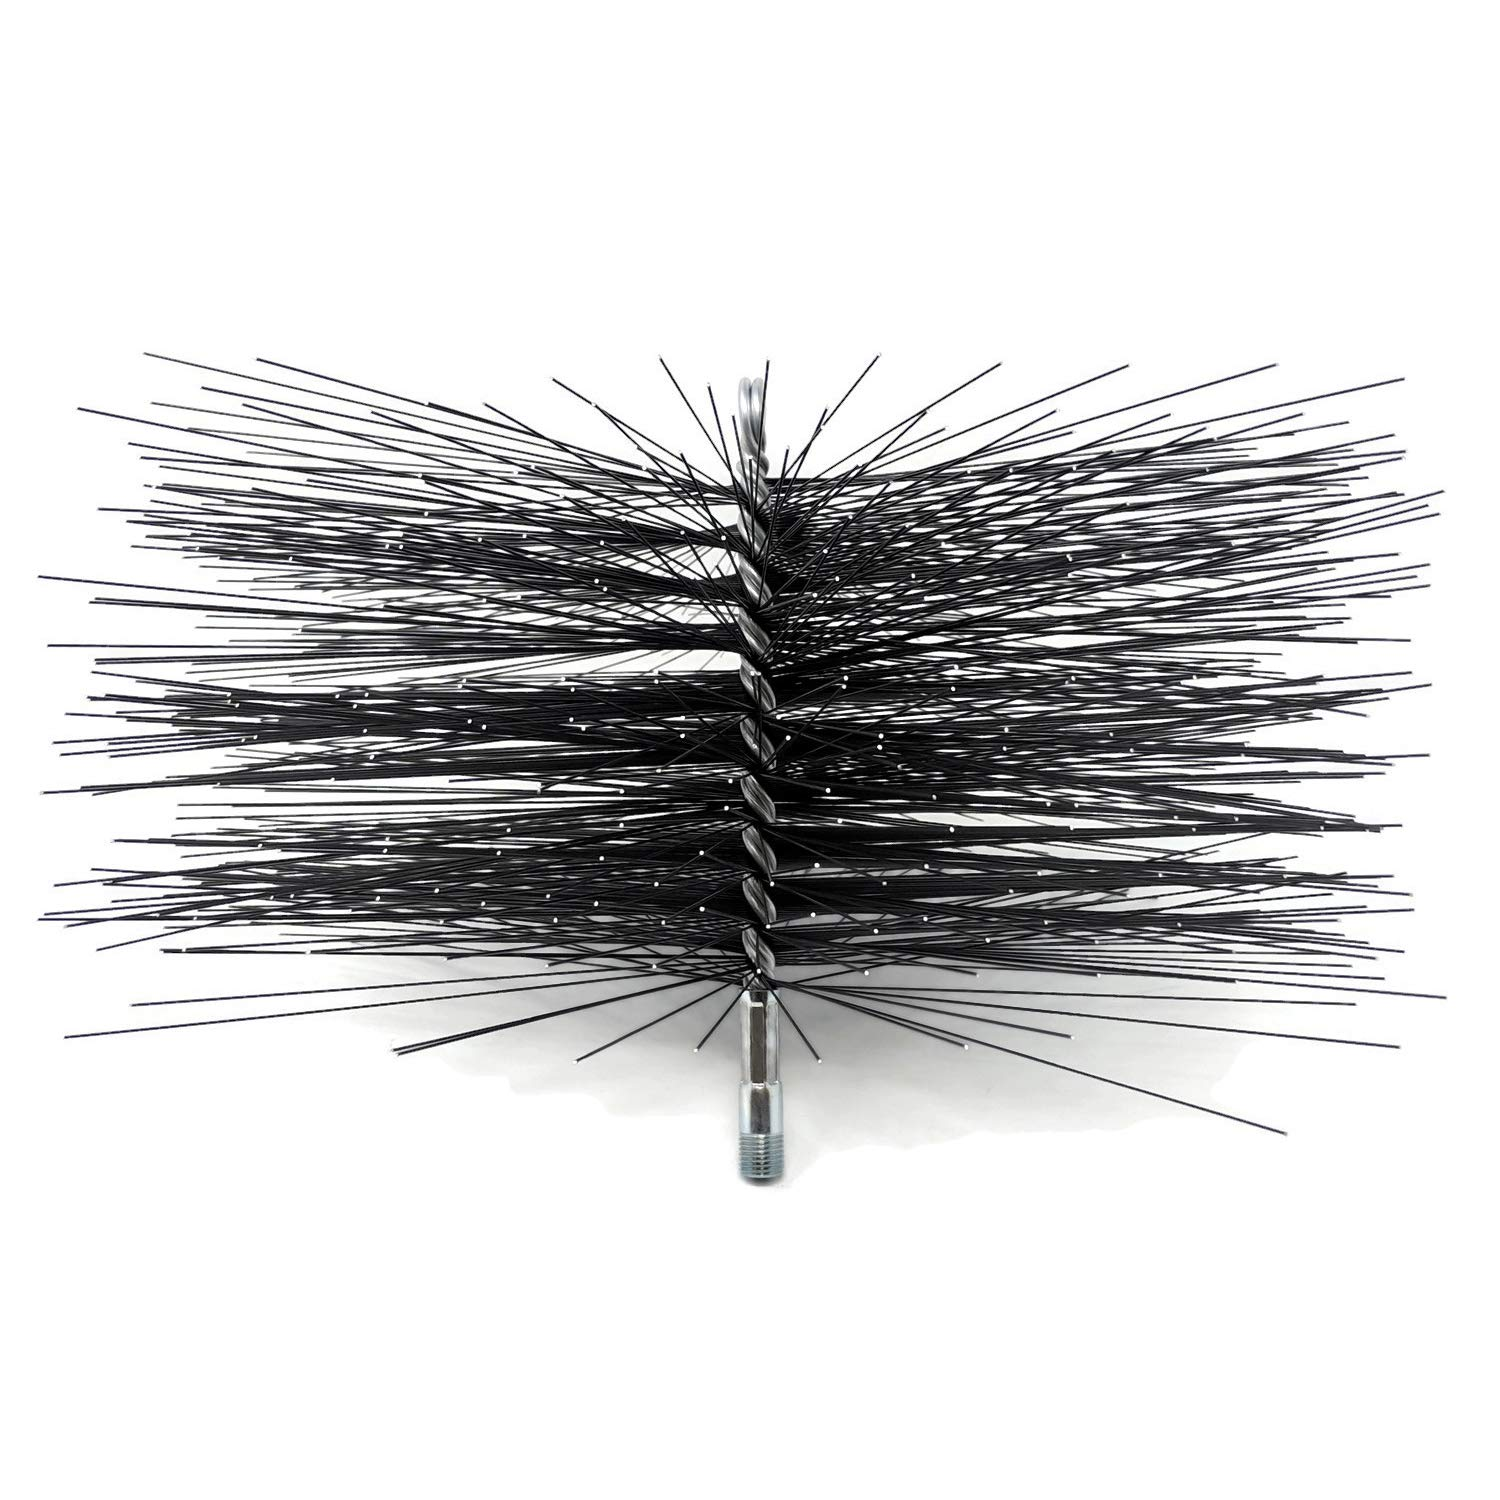 12-Inch Square Midwest Hearth Square Wire Chimney Cleaning Brush